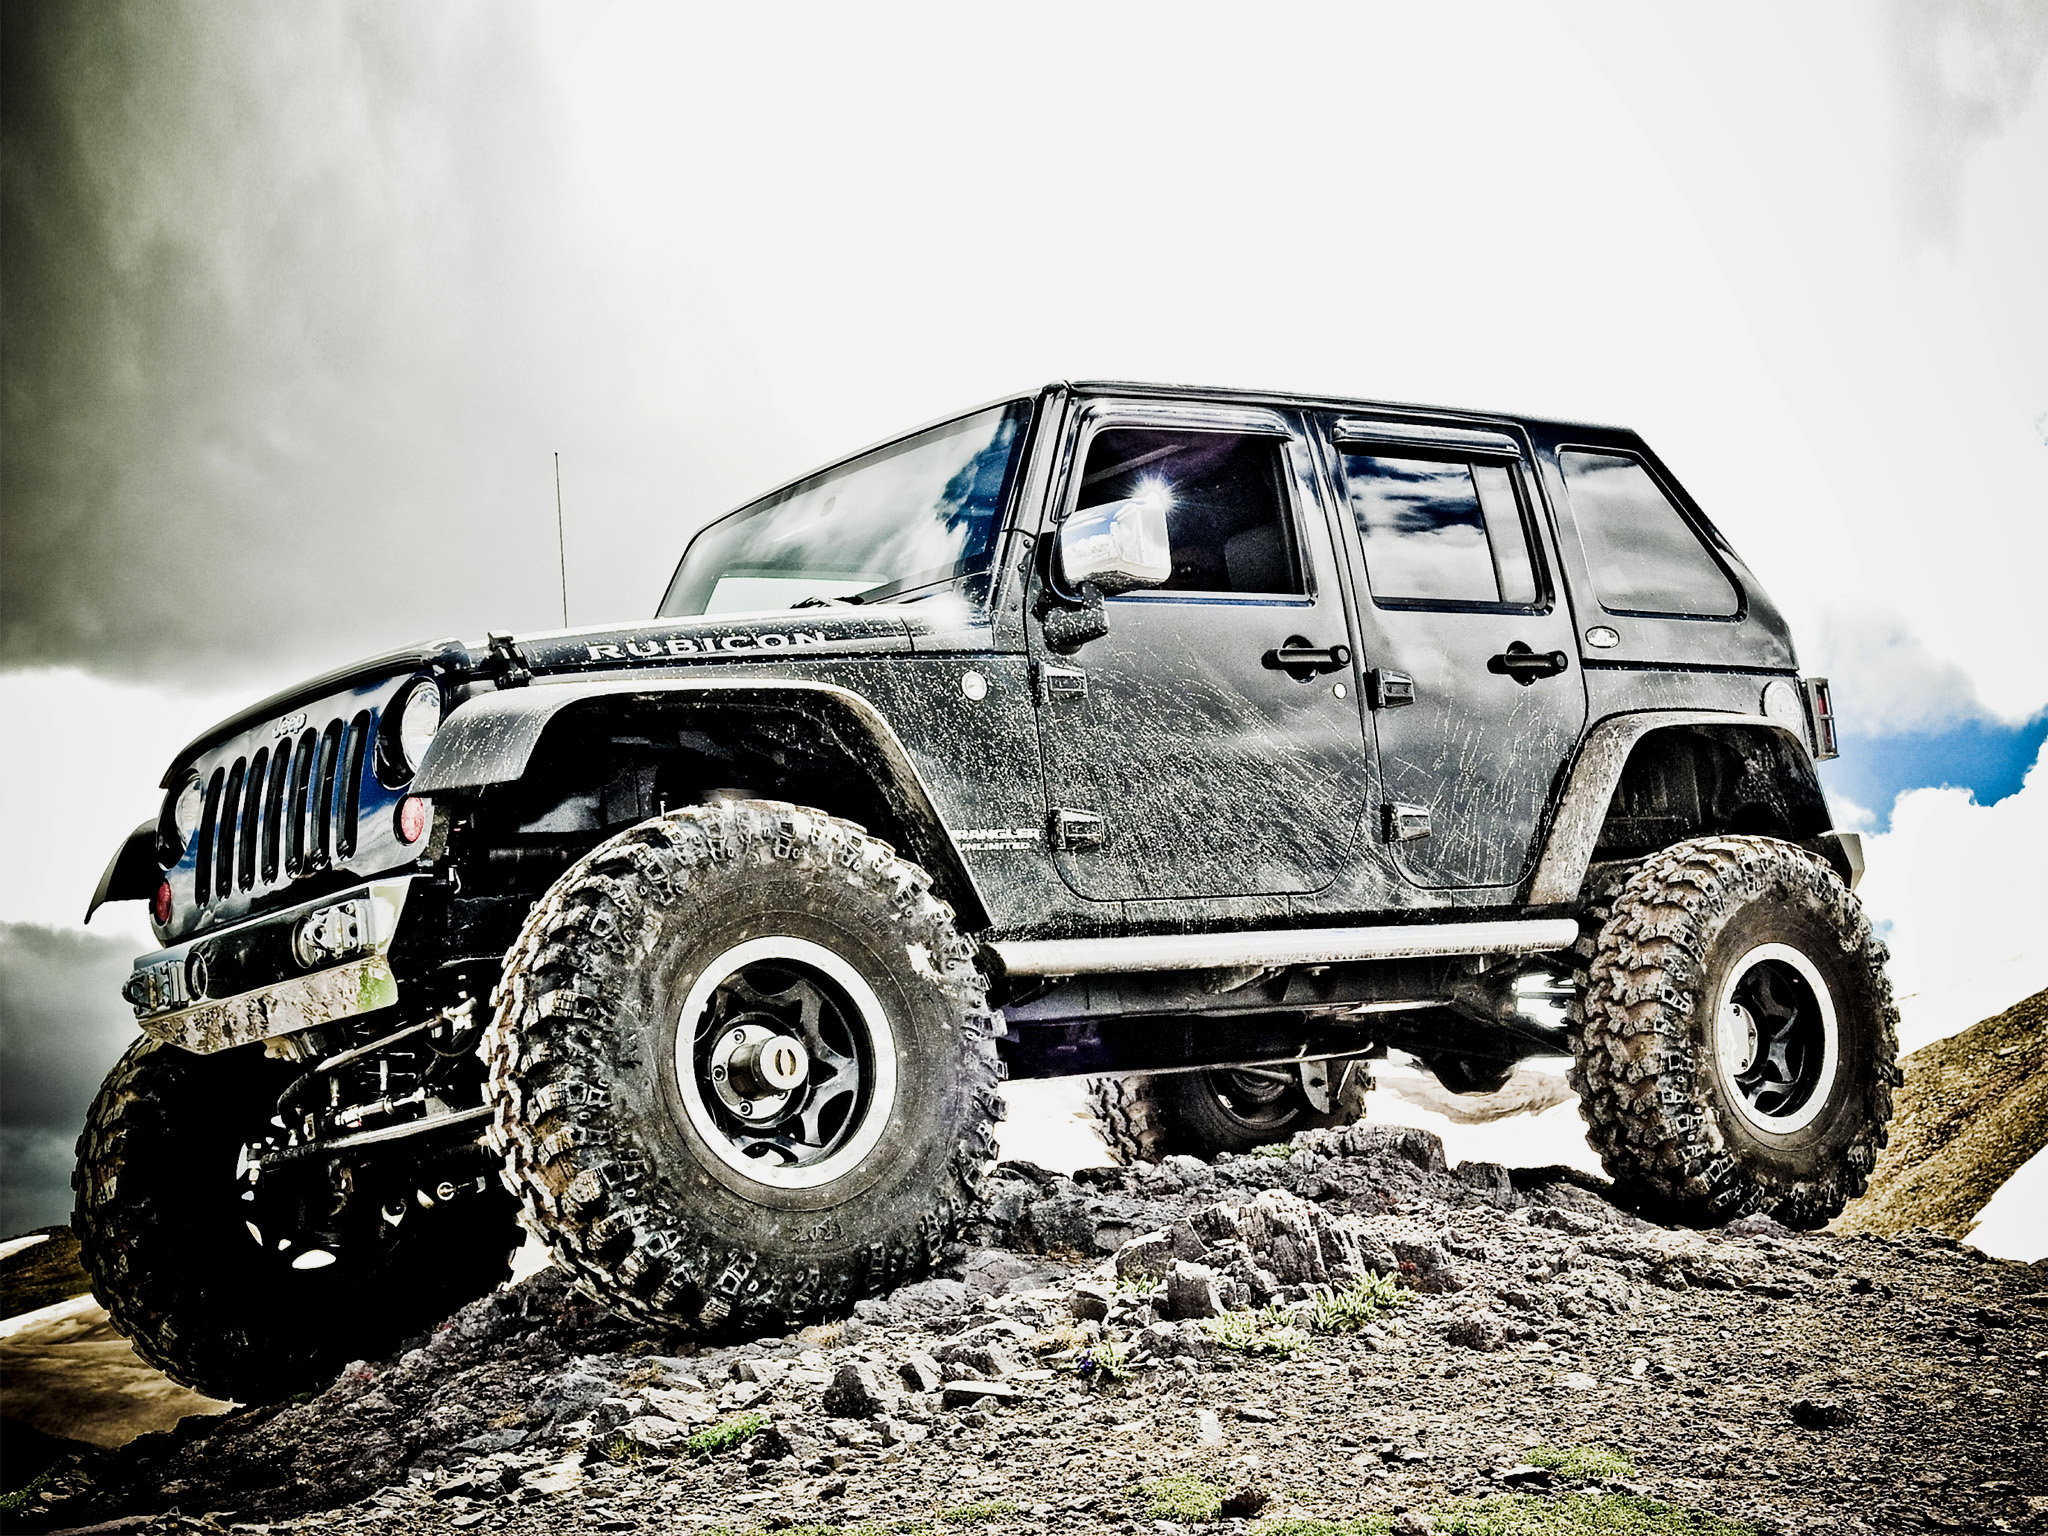 HD Wallpaper of Custom Jeep Rubicon Wallpaper, Desktop Wallpaper Custom Jeep Rubicon Wallpaper